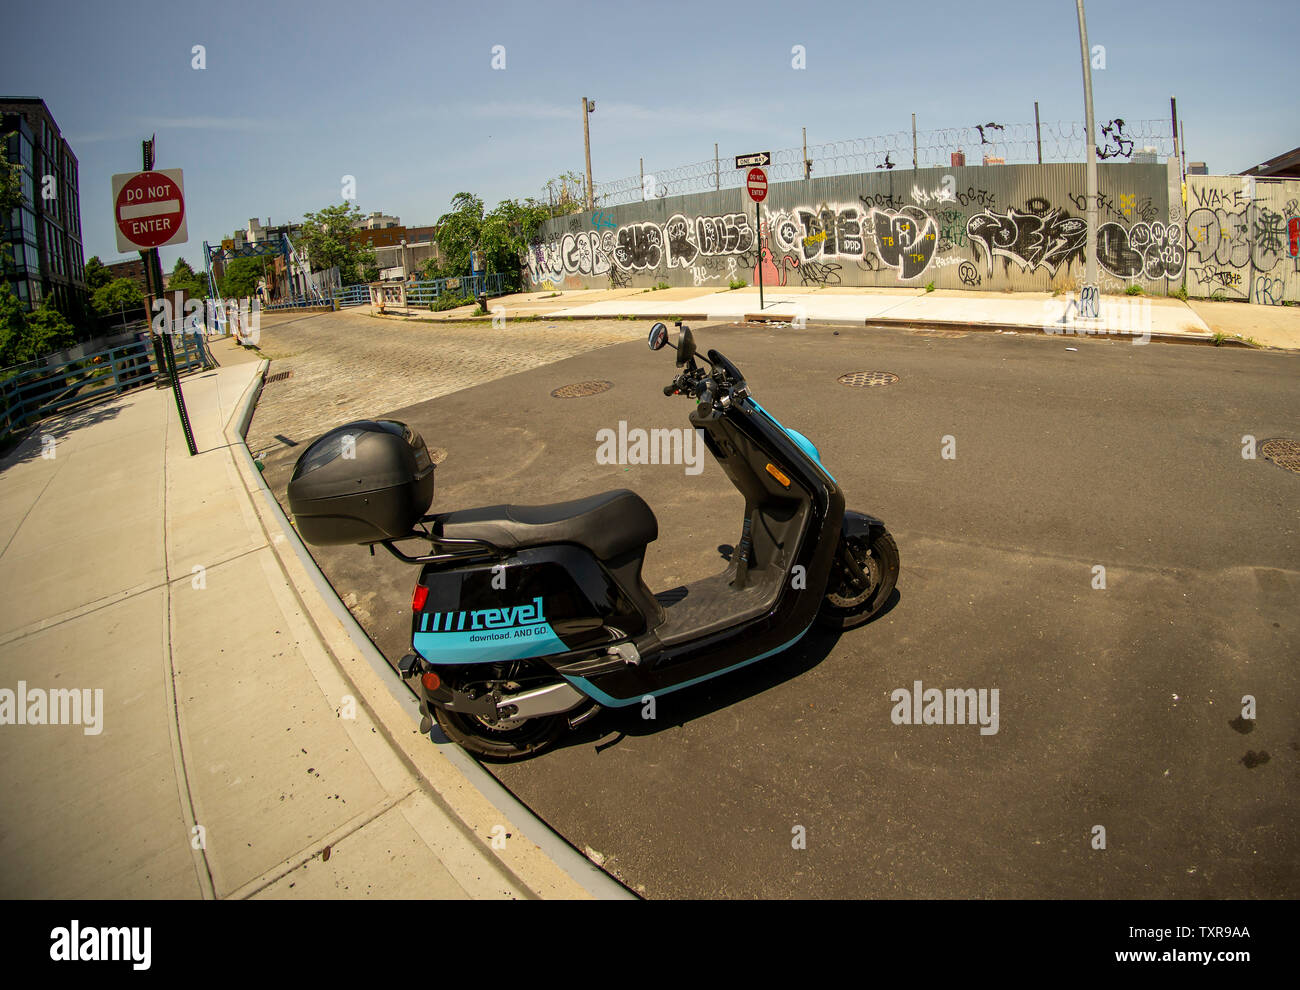 Electric Moped Stock Photos & Electric Moped Stock Images